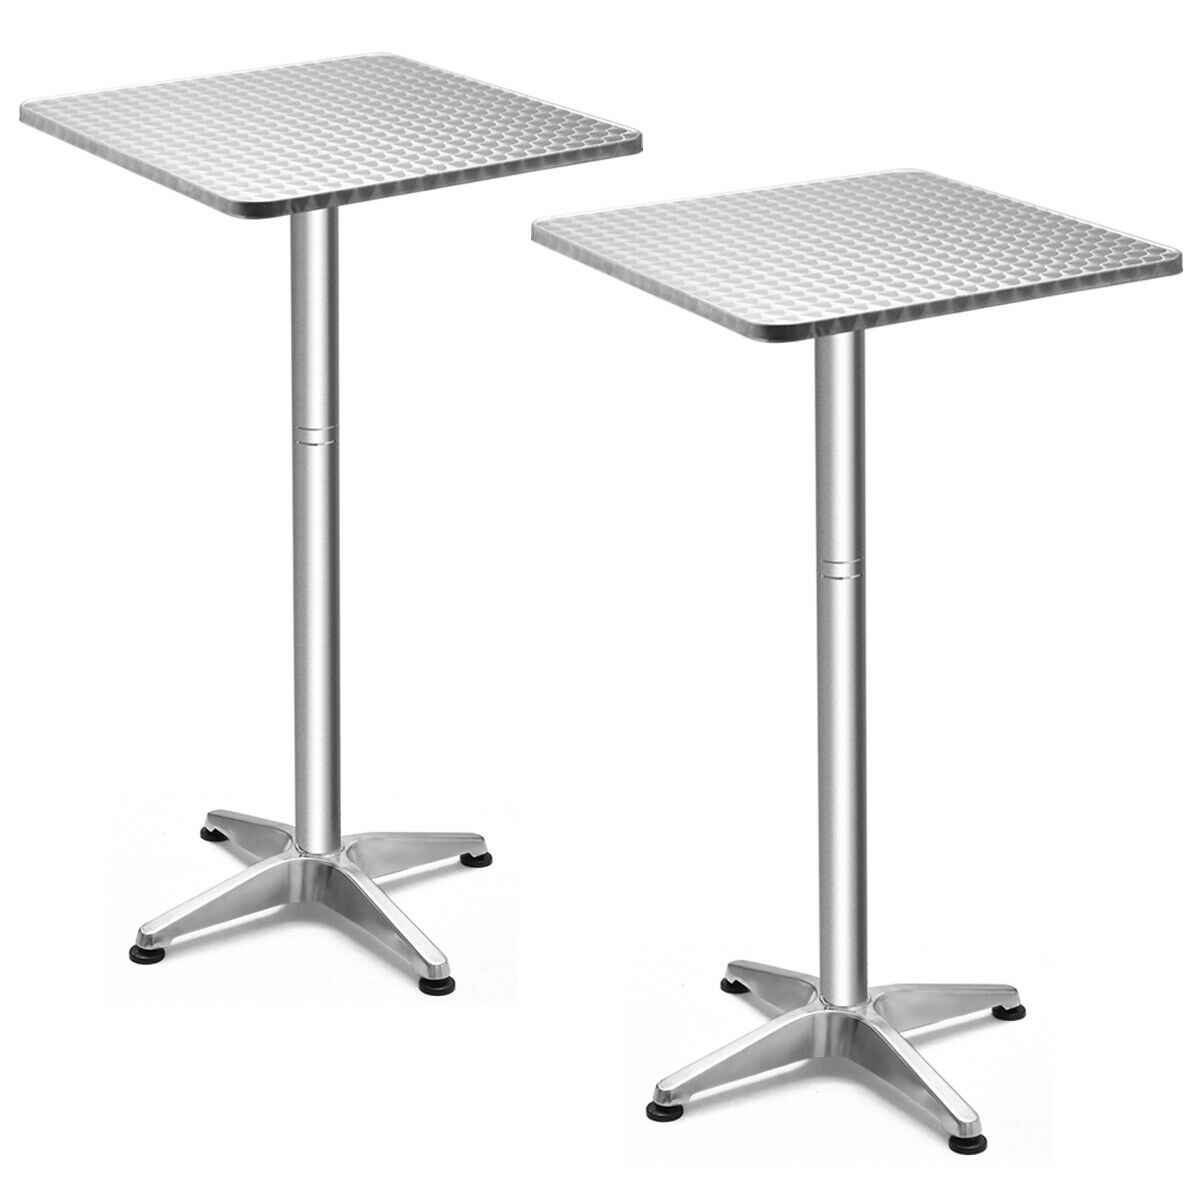 Costway Set Of 2 Folding 23.5'' Aluminium Square Bar Table 2 Height Bistro W/ Base